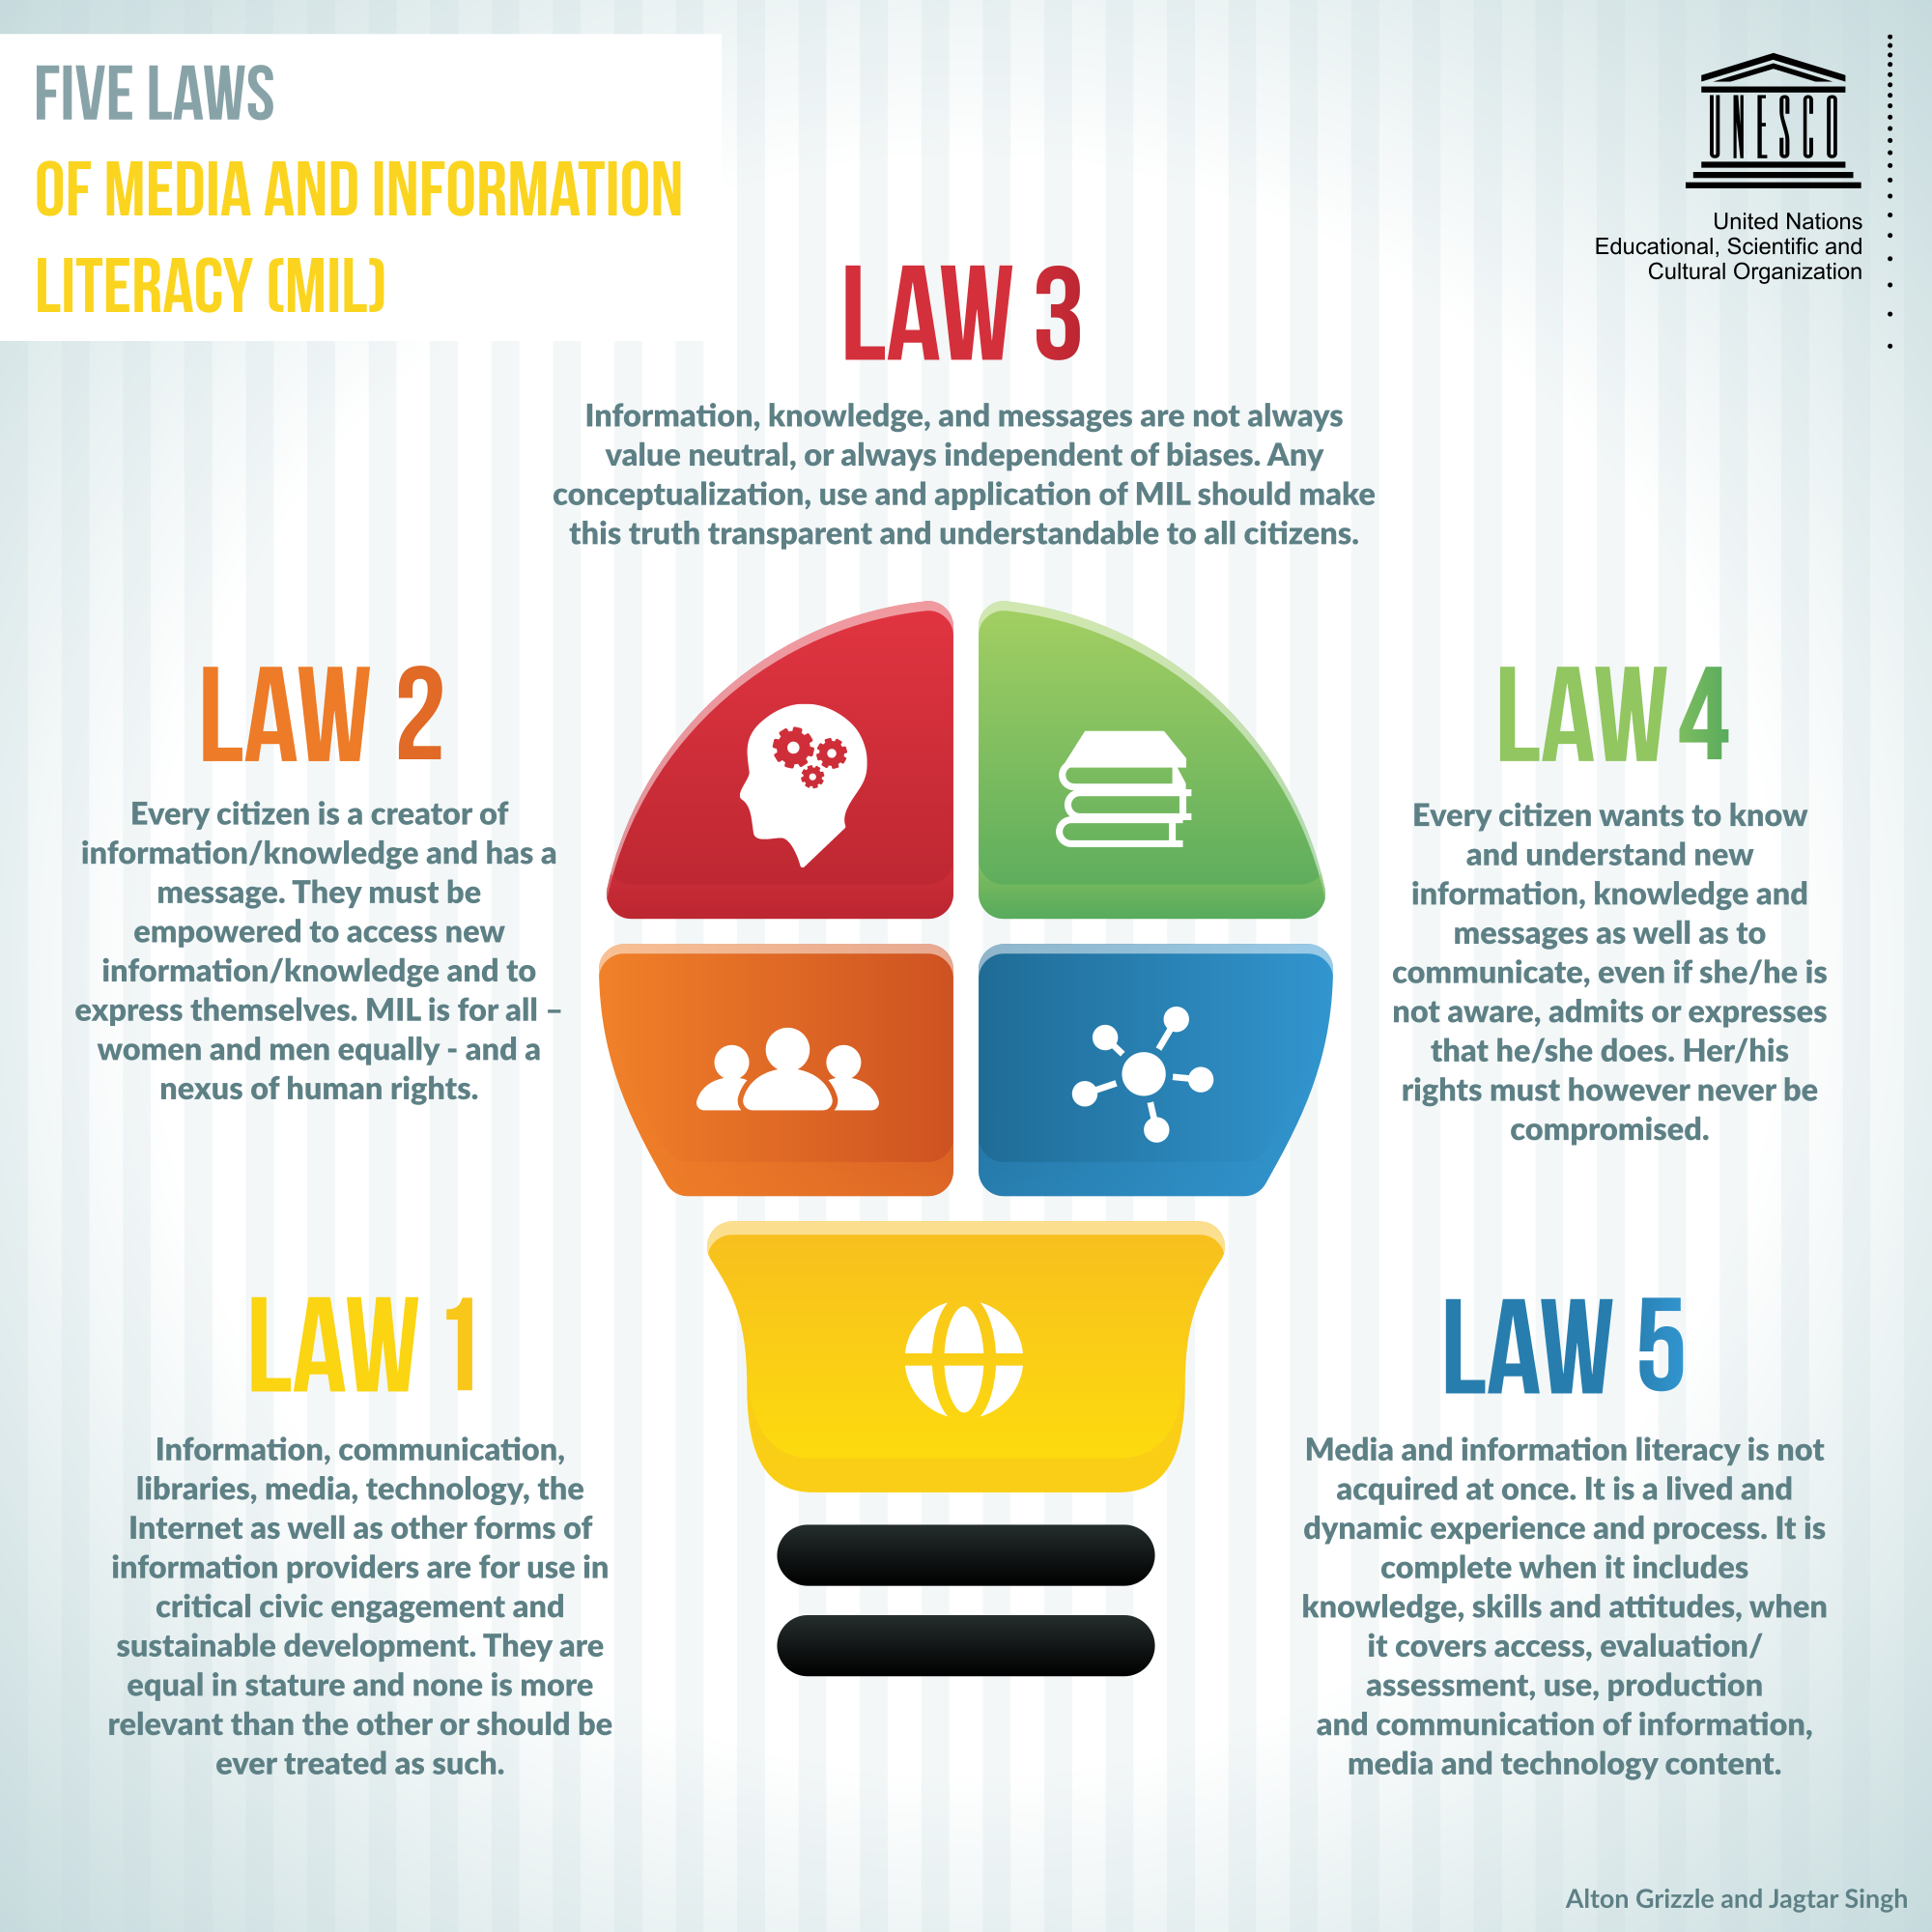 UNESCO Five Laws of Media and Information Literacy